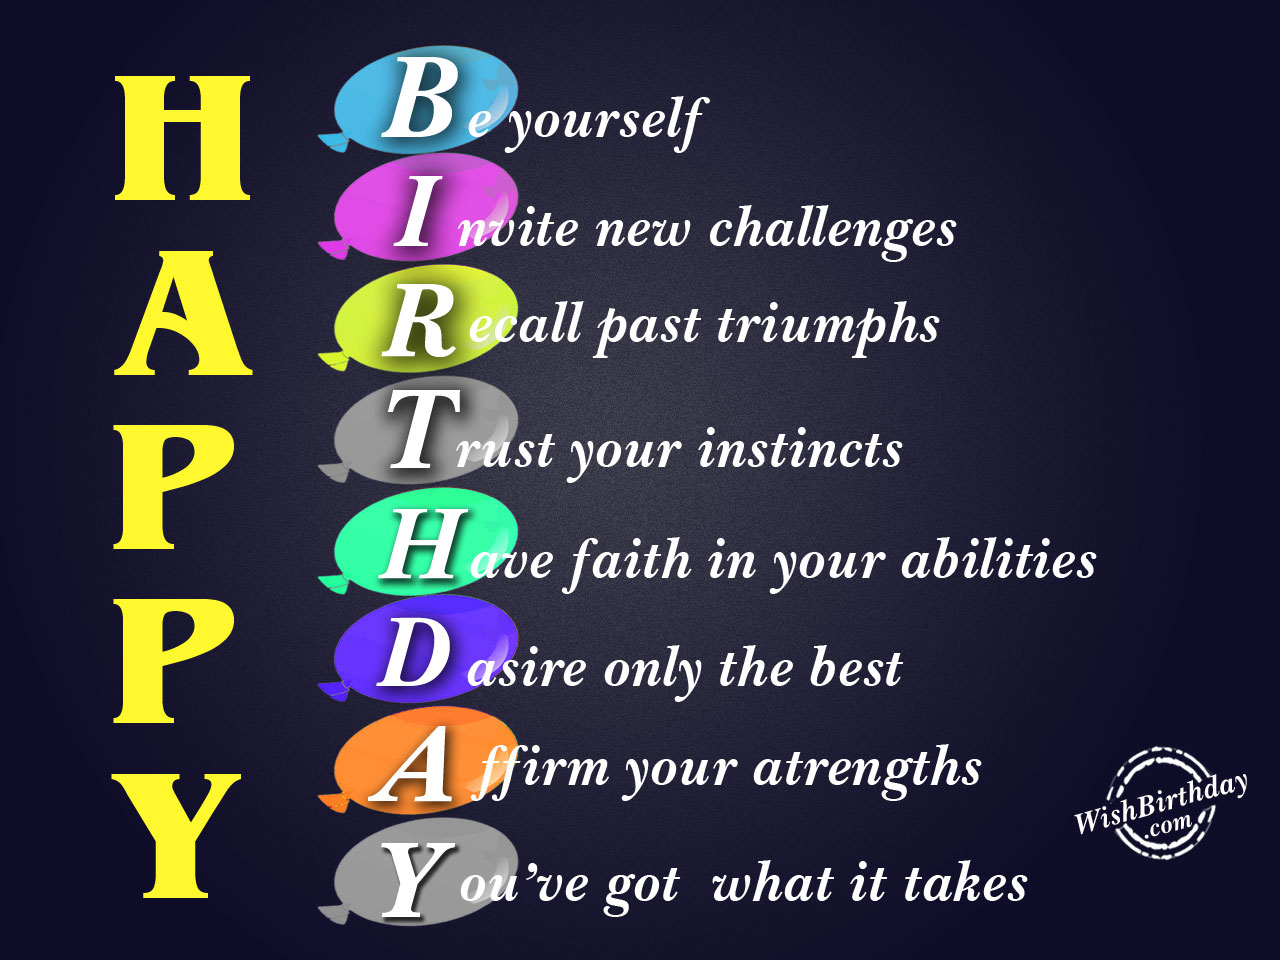 best birthday wish to yourself ; Be-yourselfHappy-Birthday-WB06